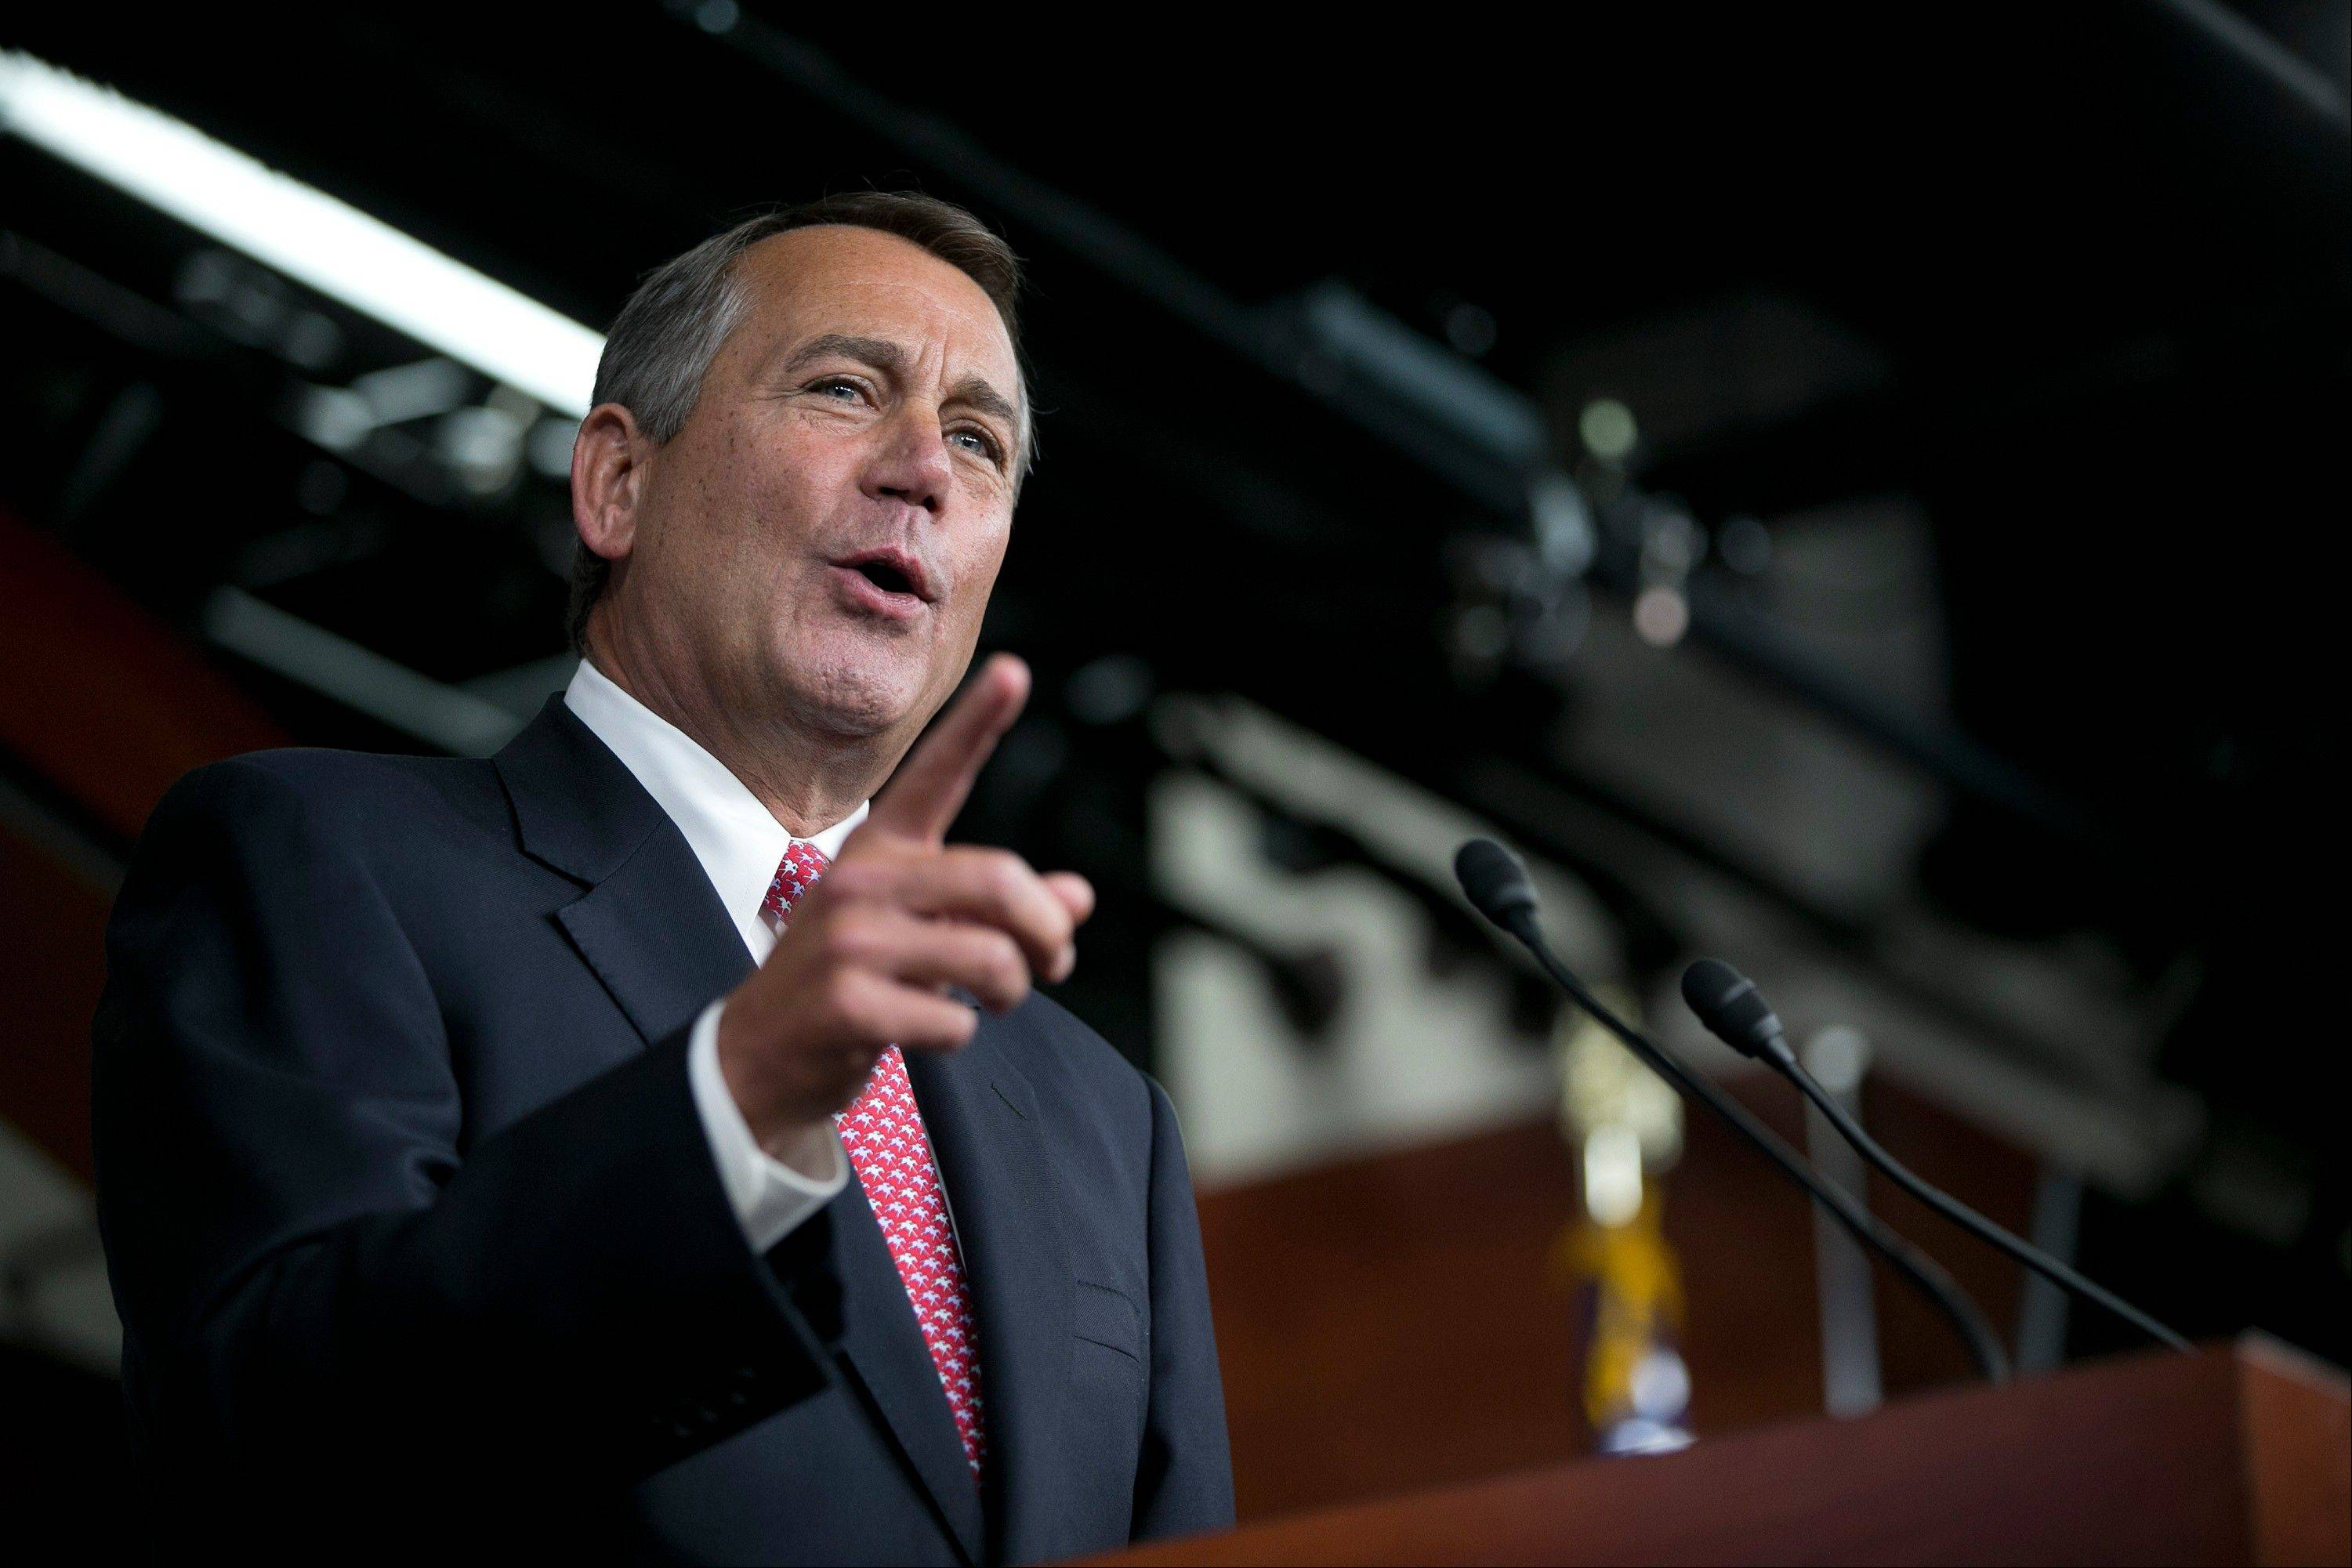 Obama meets with Boehner as pressure builds for deal